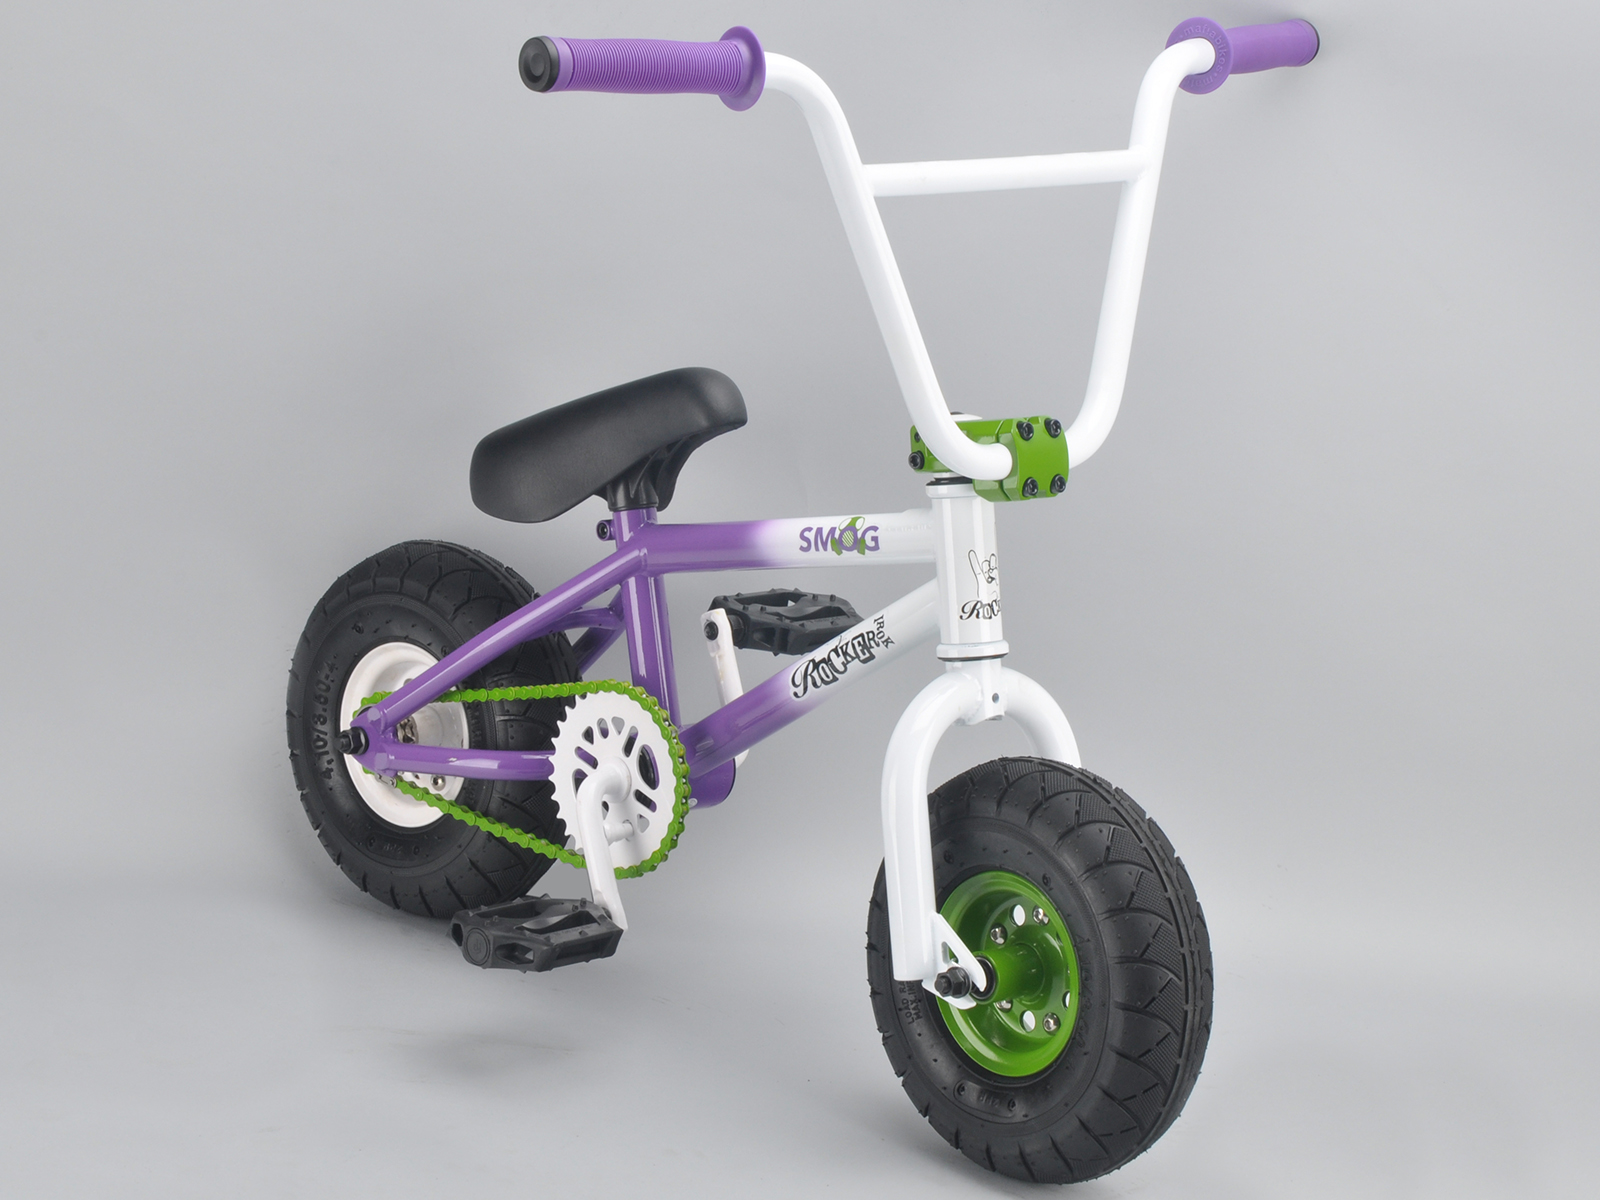 http://rockerbmx.com/images/stories/virtuemart/product/SMOGIROK0142%203.jpg